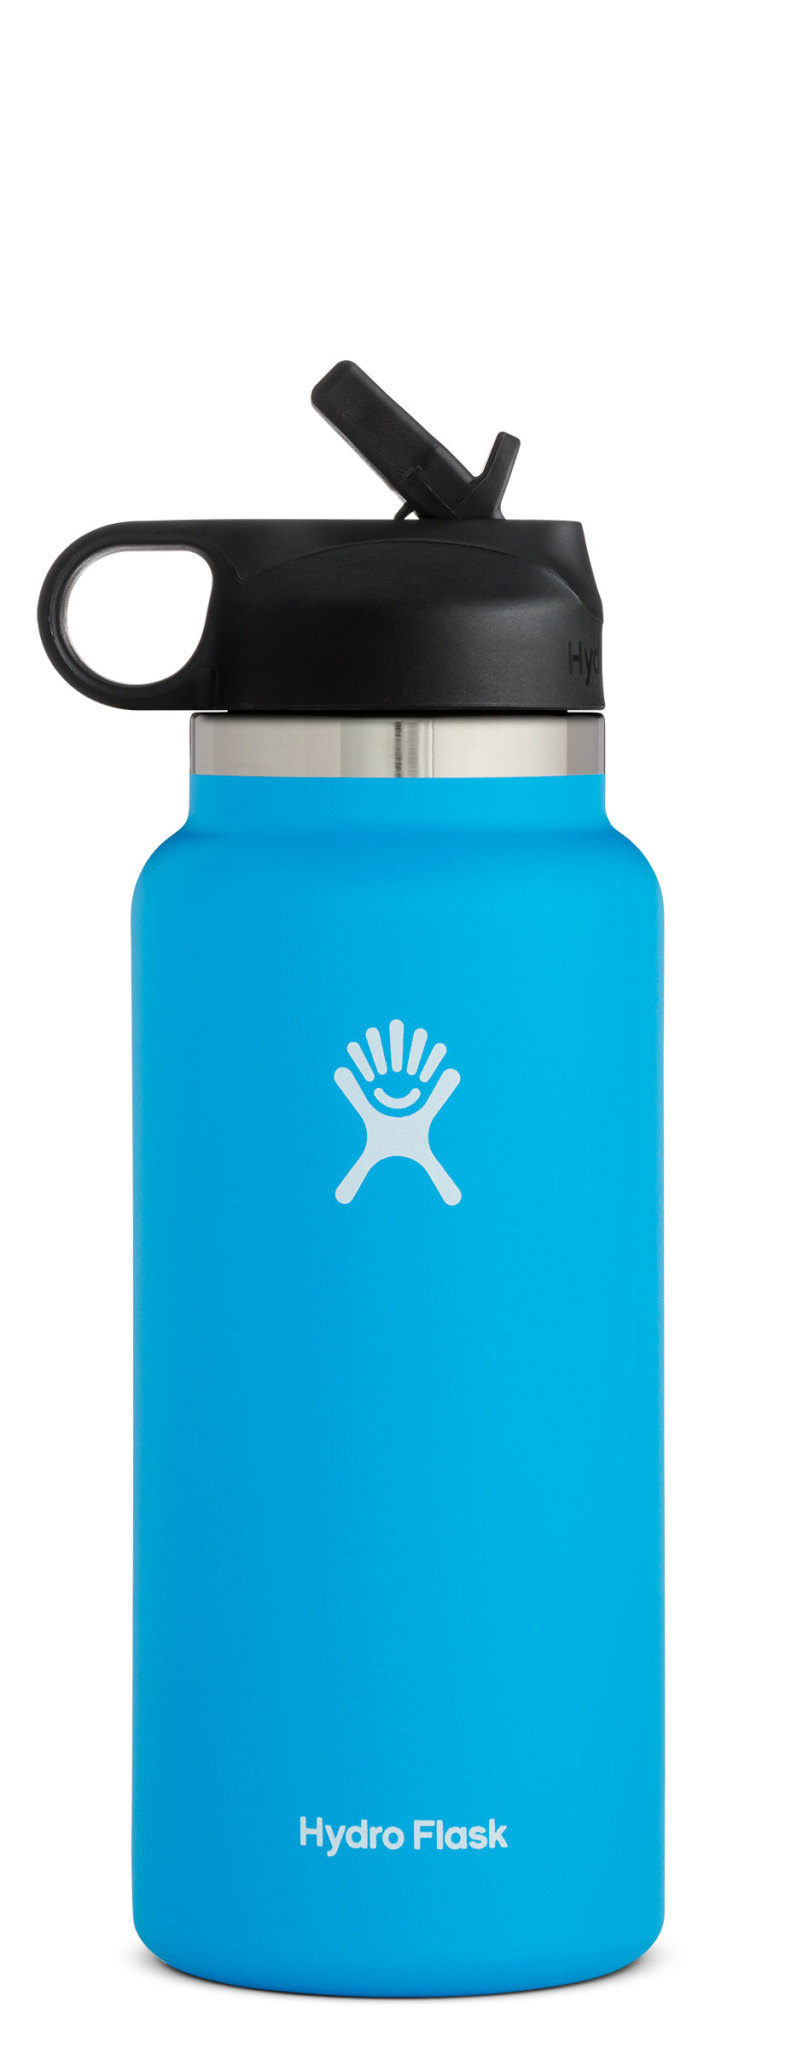 Hydro Flask 32oz Wide Mouth with Straw Lid-4